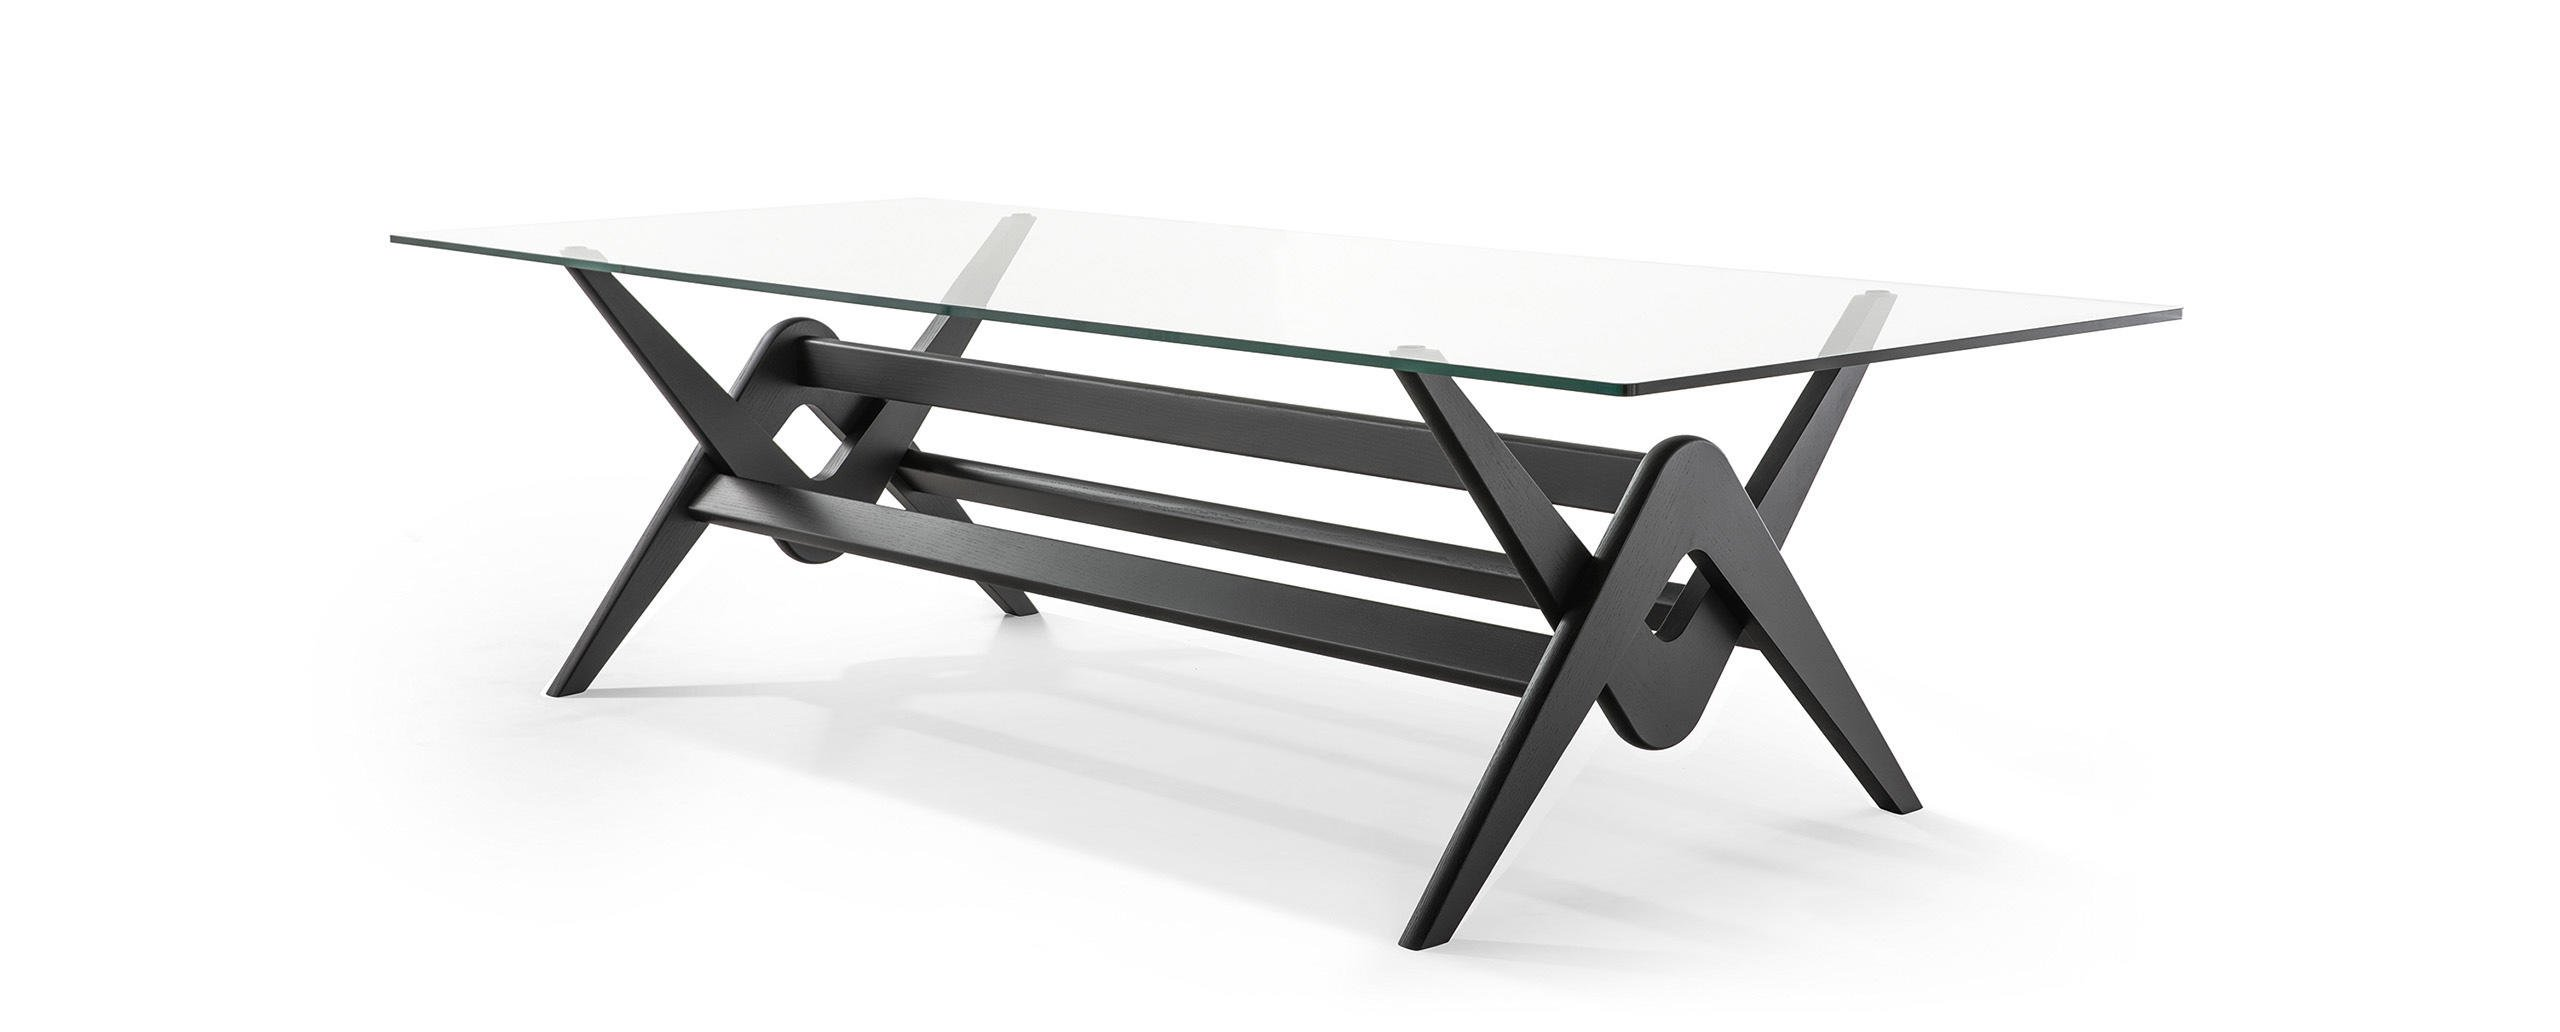 12_cassina_capitol_complex_table_hommage_o_pierre_jeanneret_cassina_rd